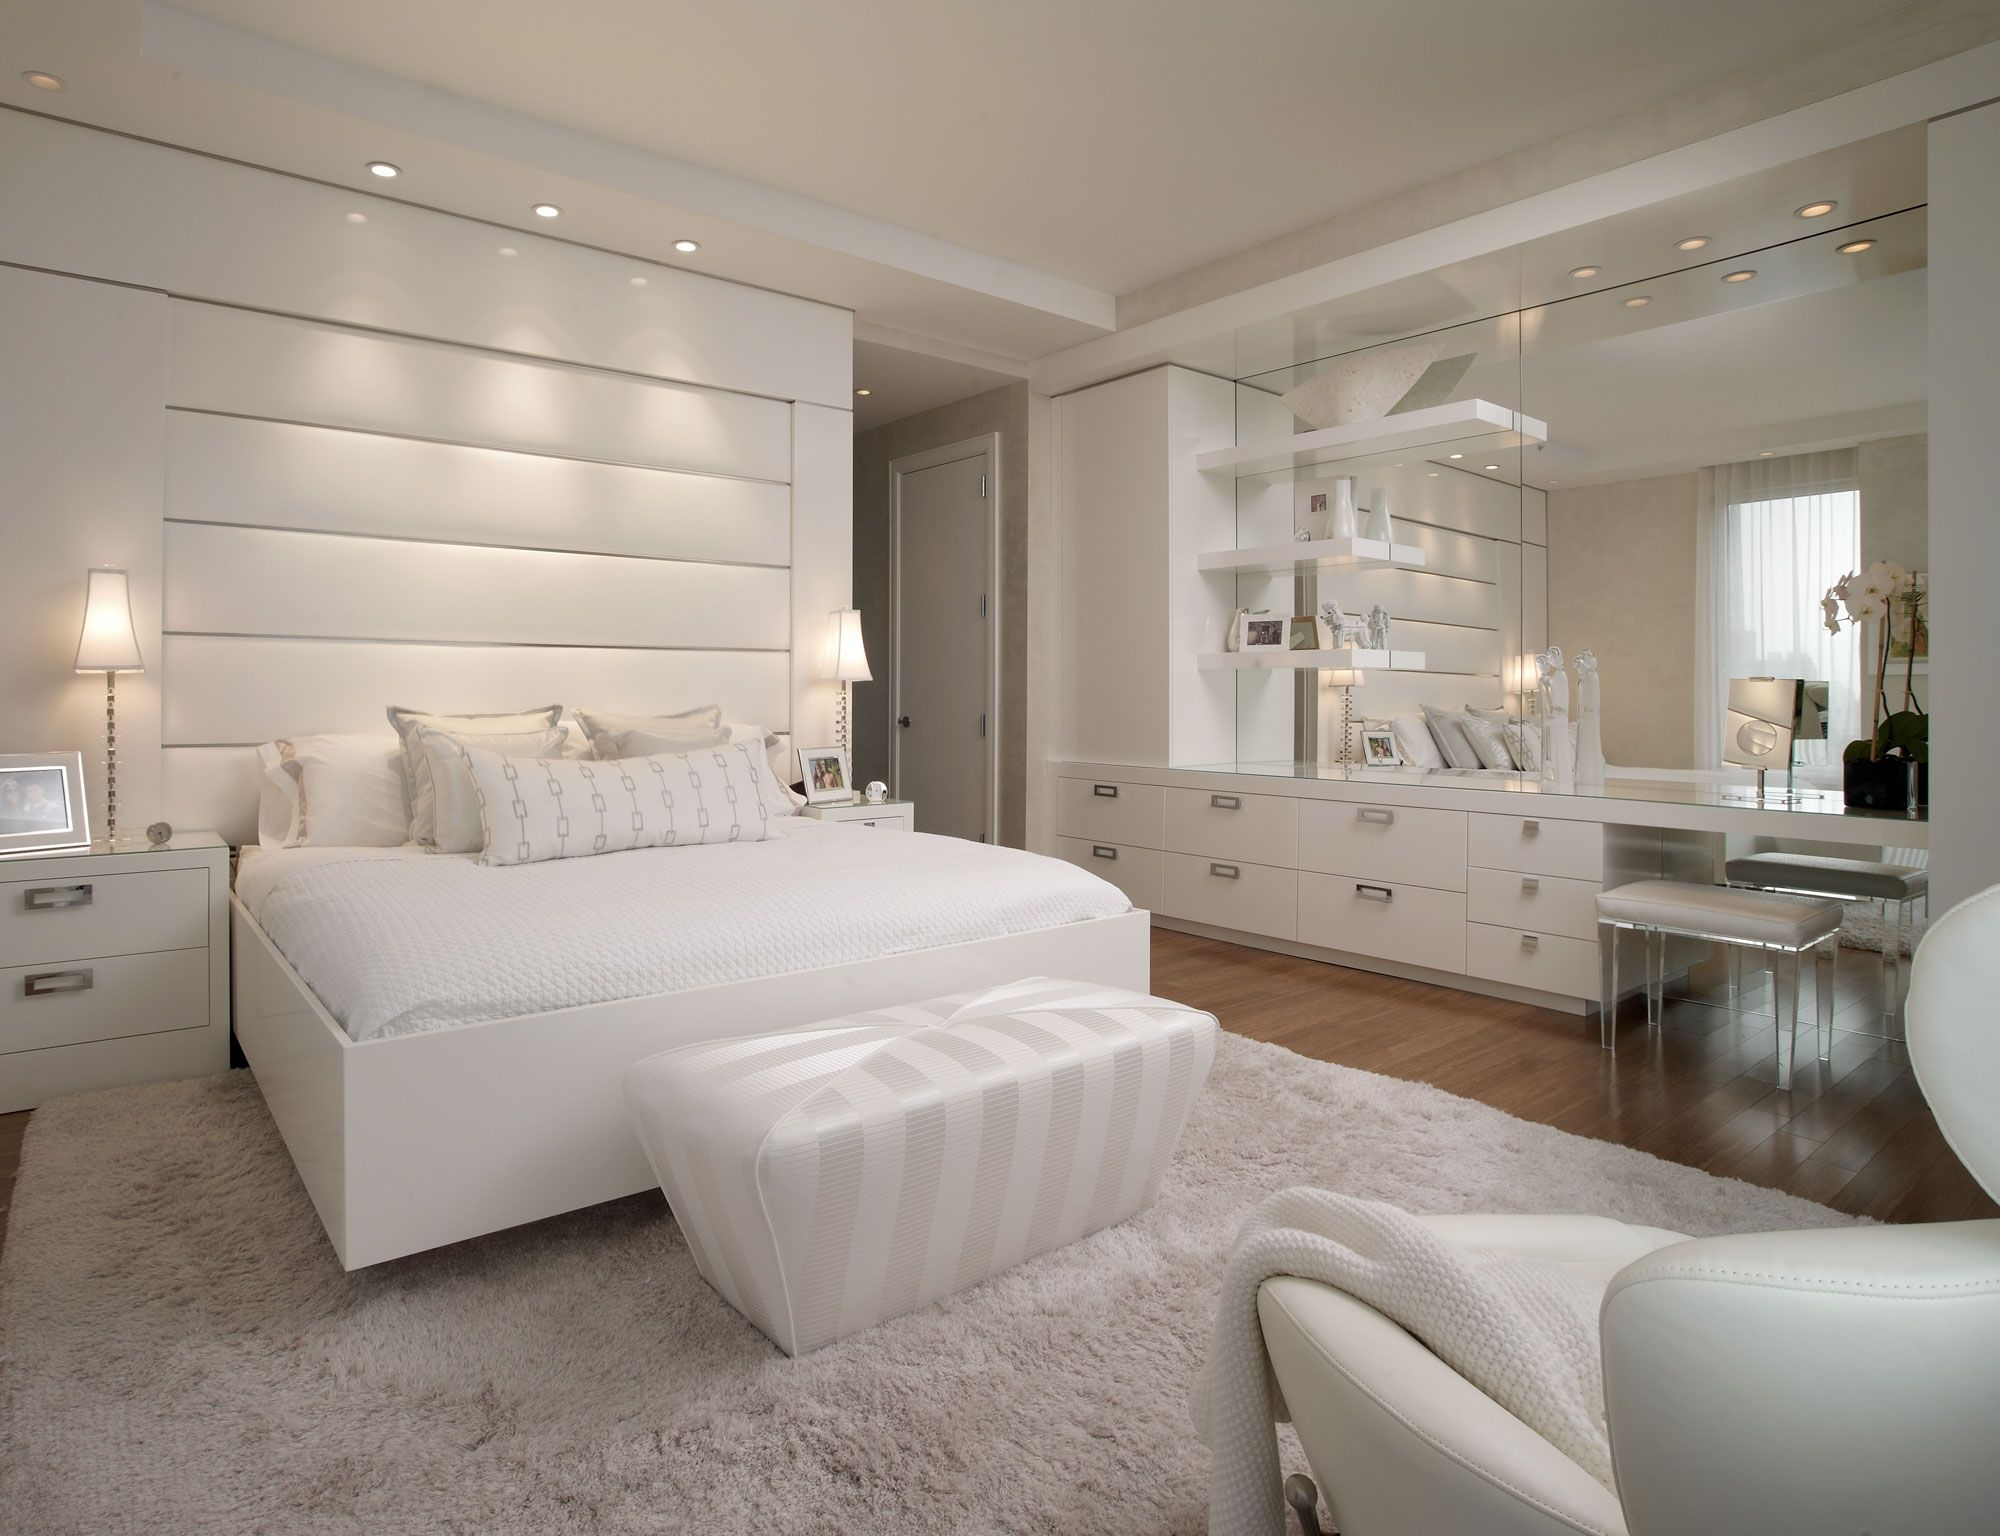 white bedrooms master bedrooms bedroom wallpaper bedroom decorating